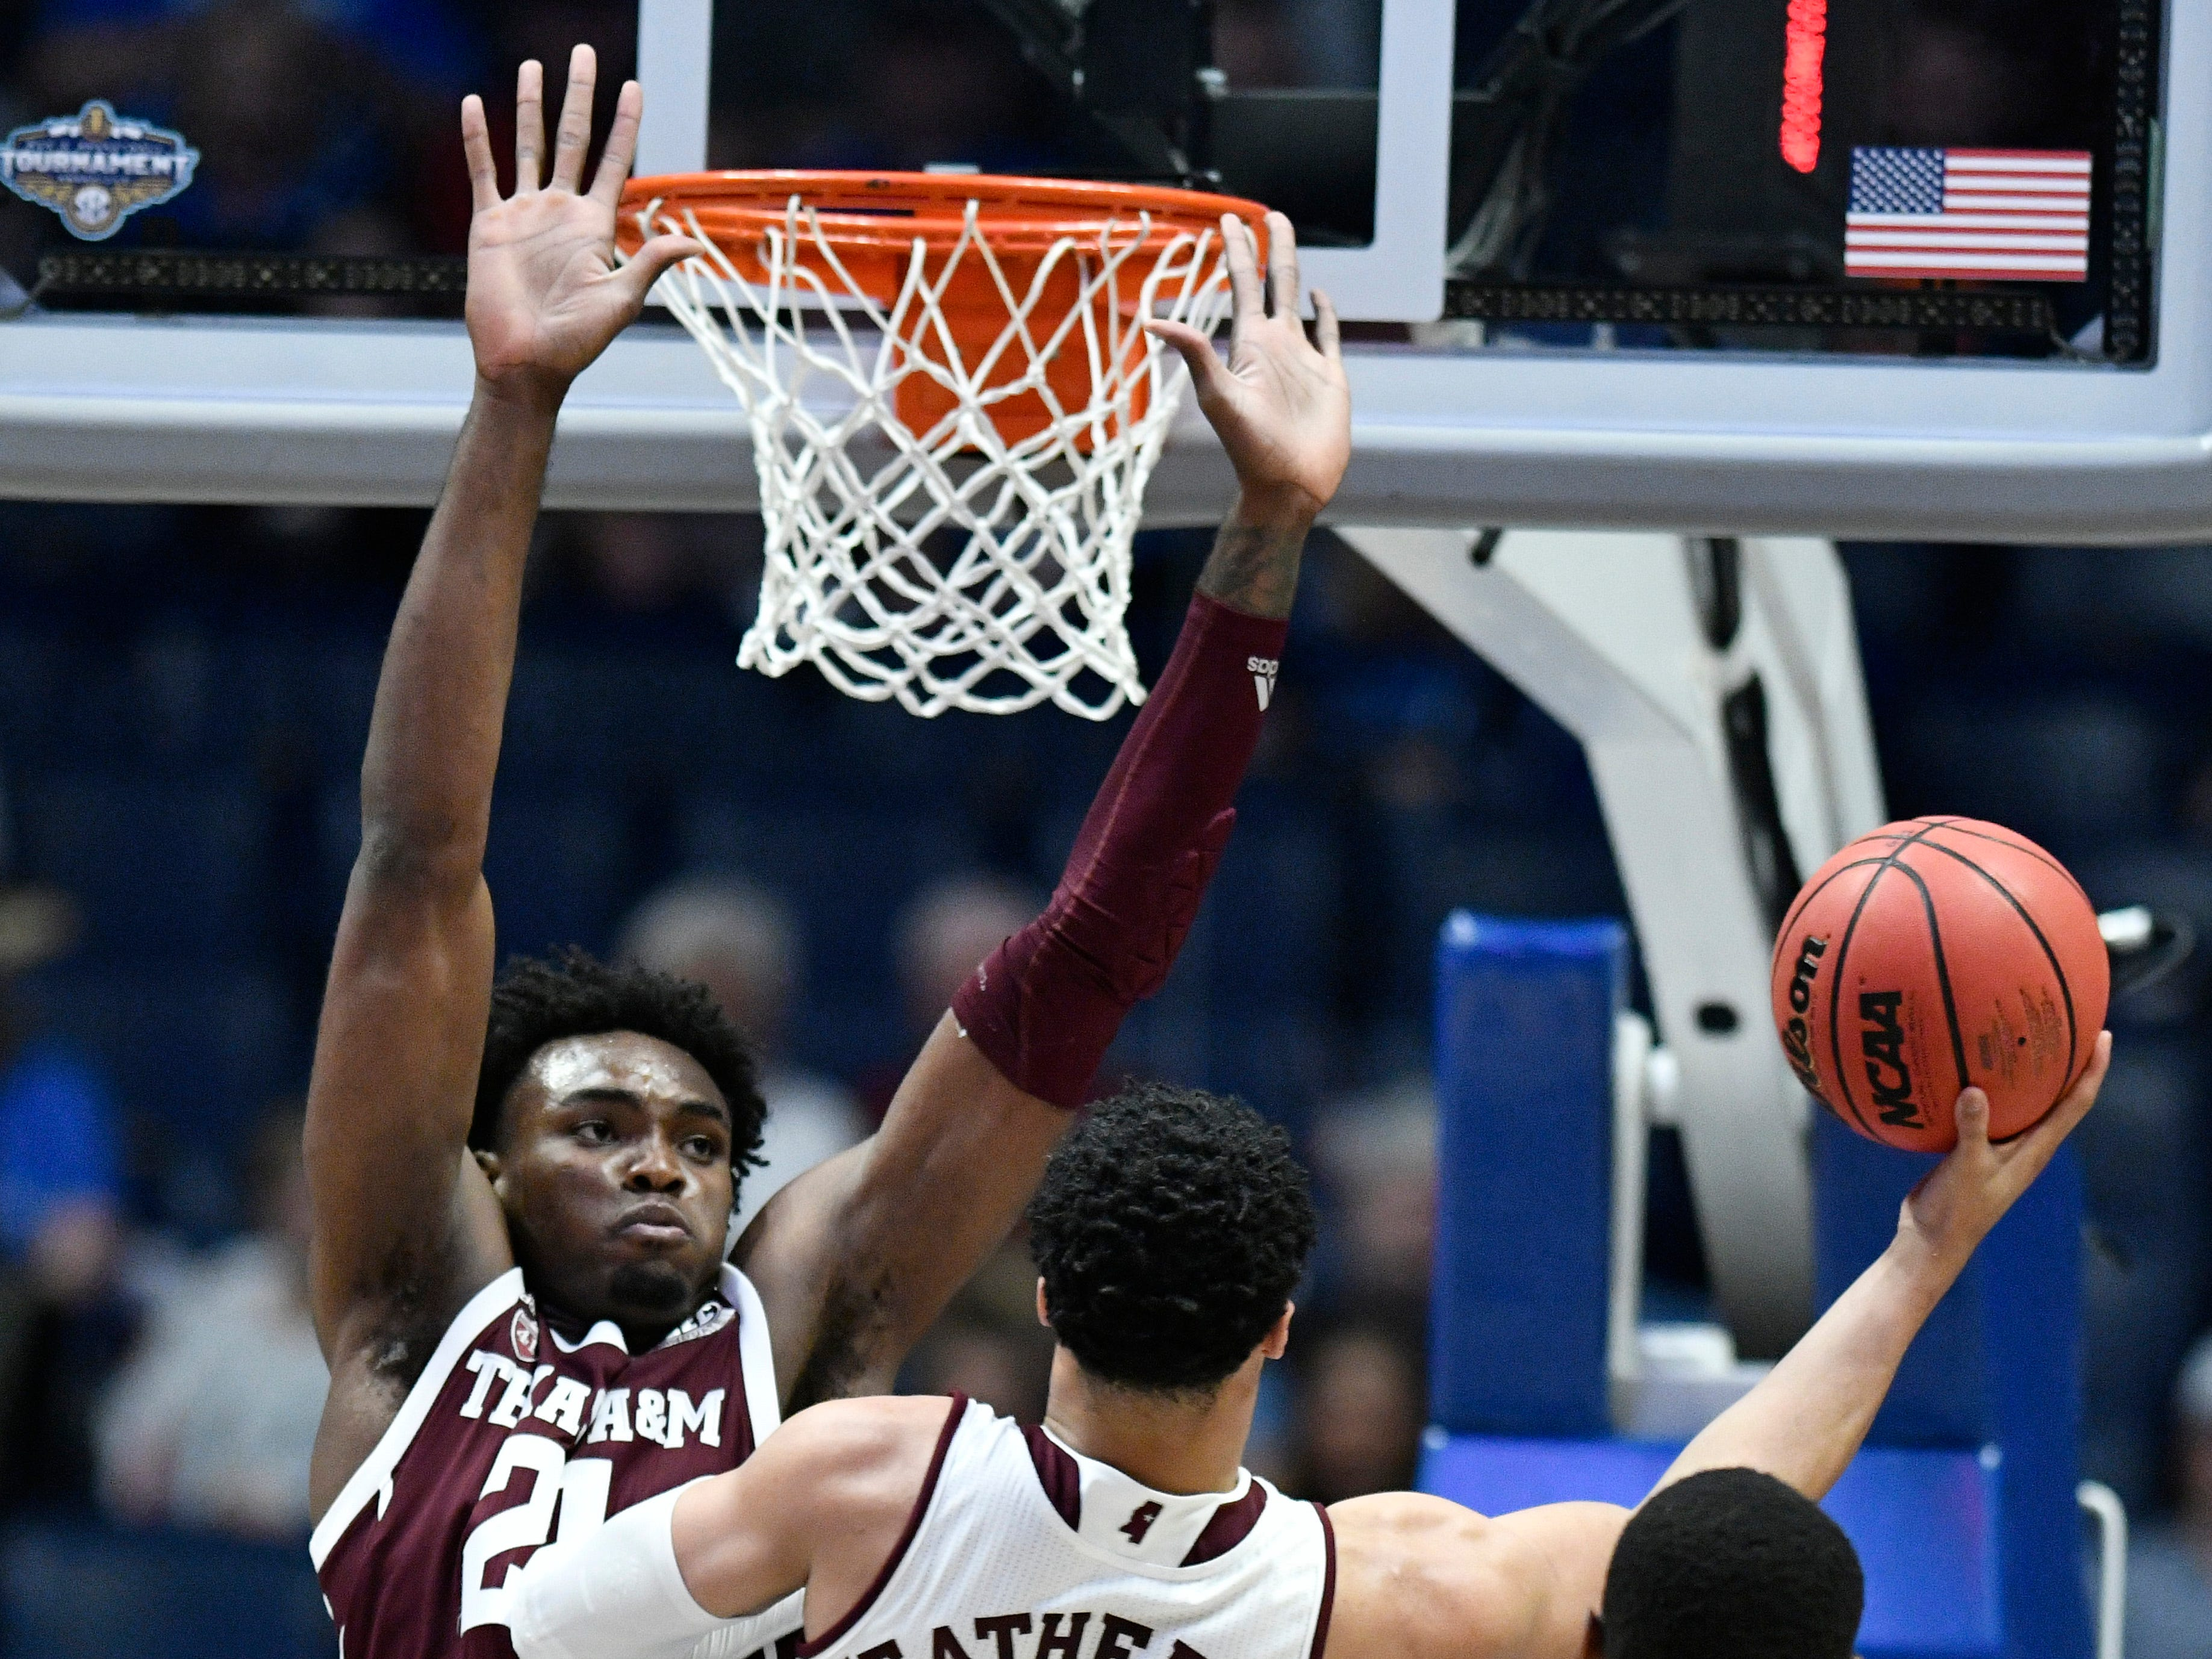 Mississippi State guard Quinndary Weatherspoon (11) shoots defended by Texas A&M forward Christian Mekowulu (21) during the first half of the SEC Men's Basketball Tournament game at Bridgestone Arena in Nashville, Tenn., Thursday, March 14, 2019.